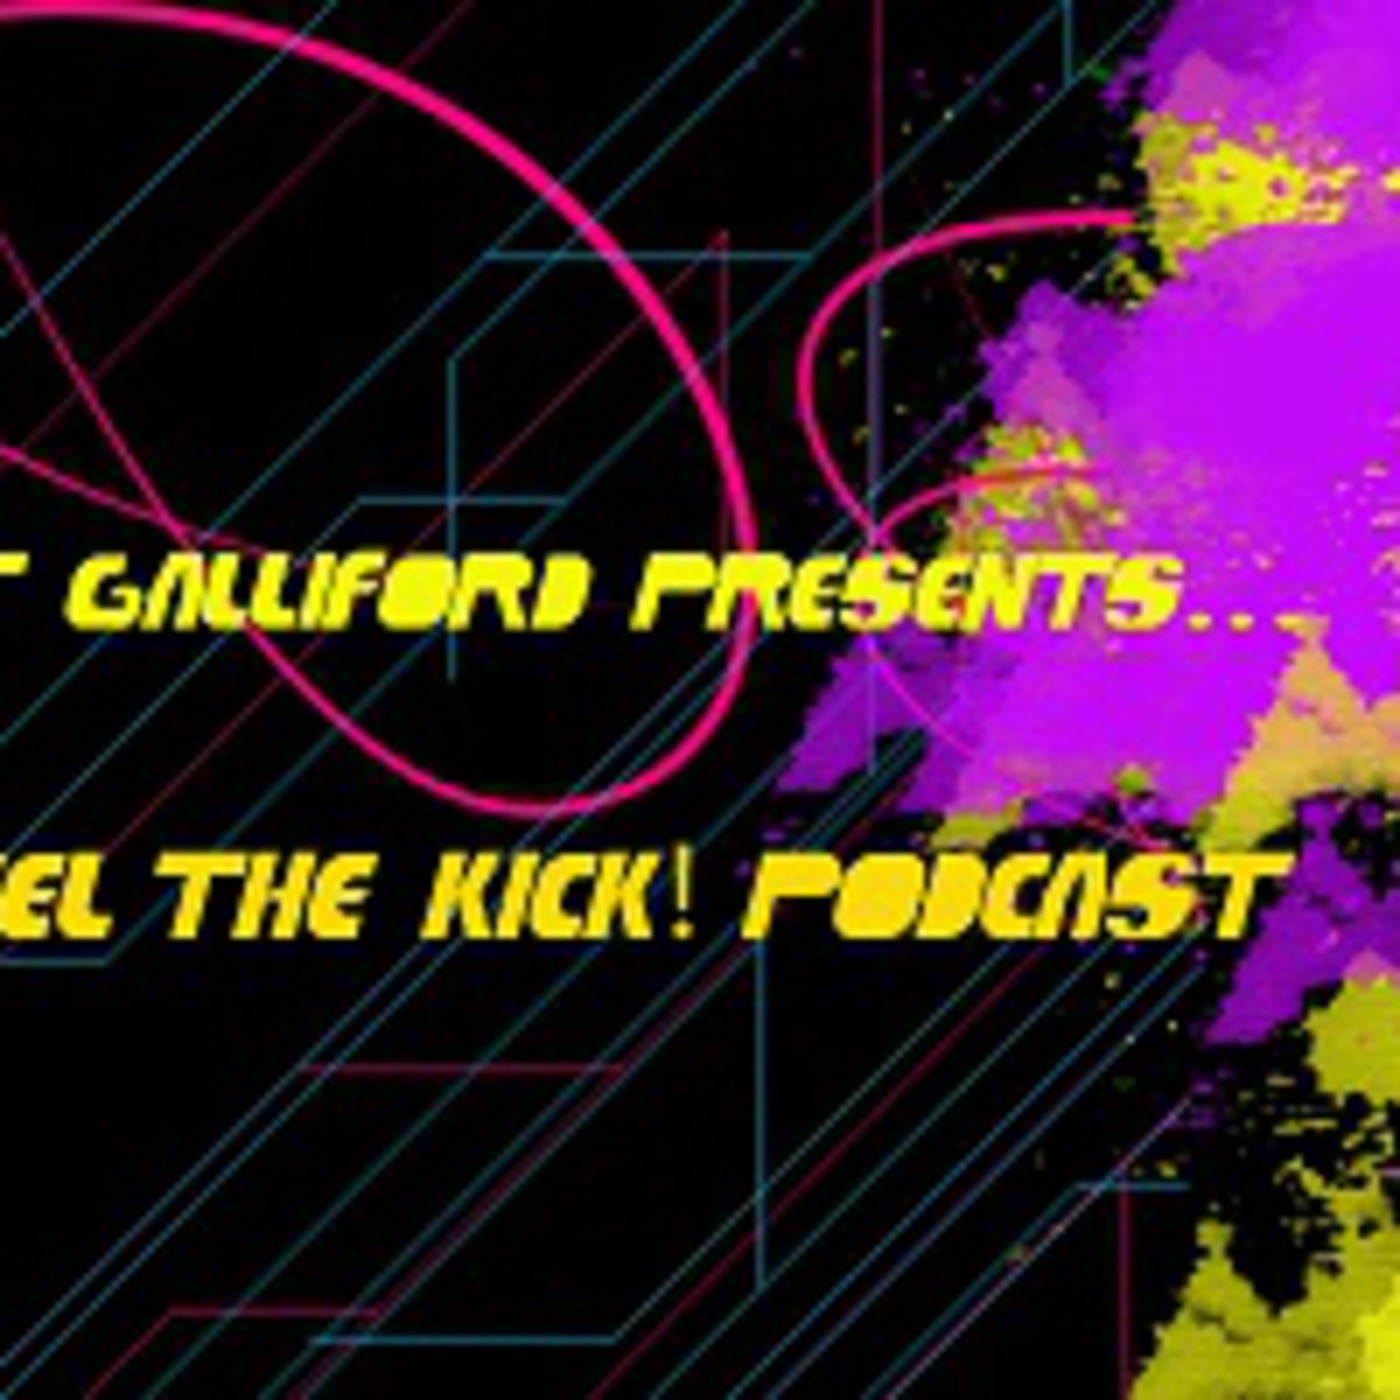 Matt Galliford's Podcast